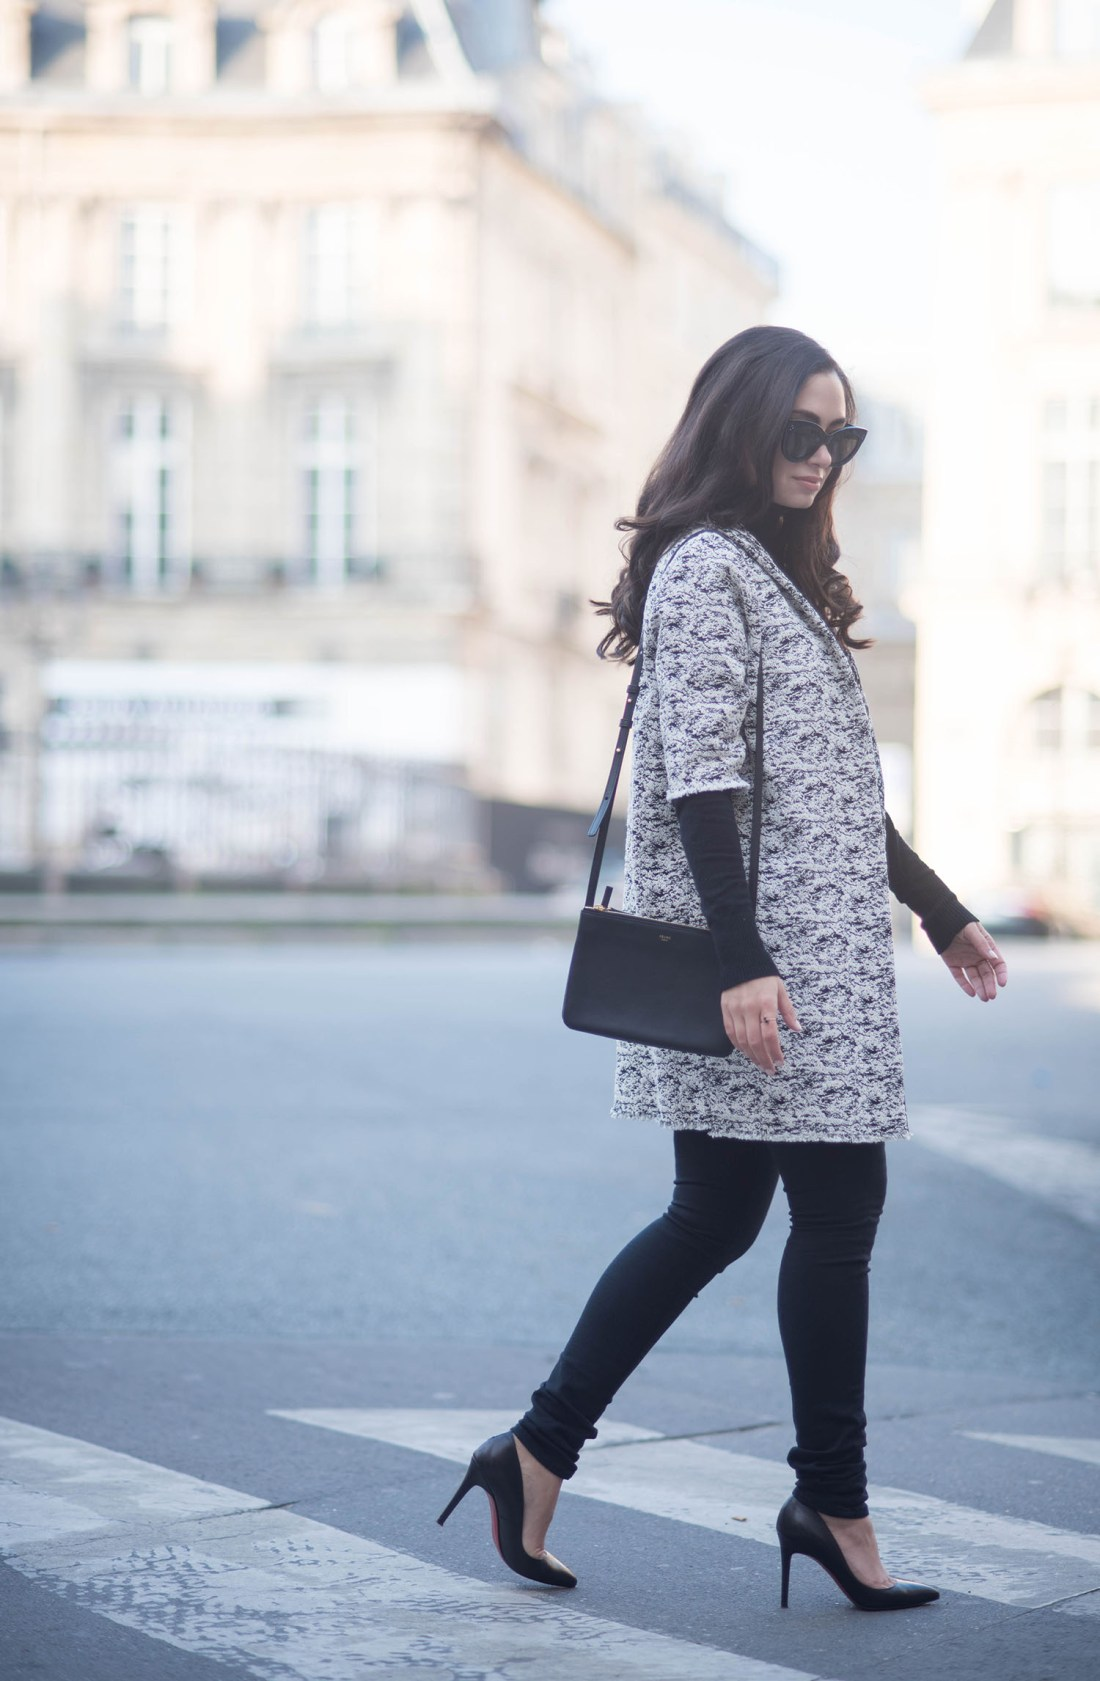 Fashion blogger Cee Fardoe of Coco & Vera crosses the street at Place des Victories in Paris carrying a Celine trio bag and wearing Mavi jeans